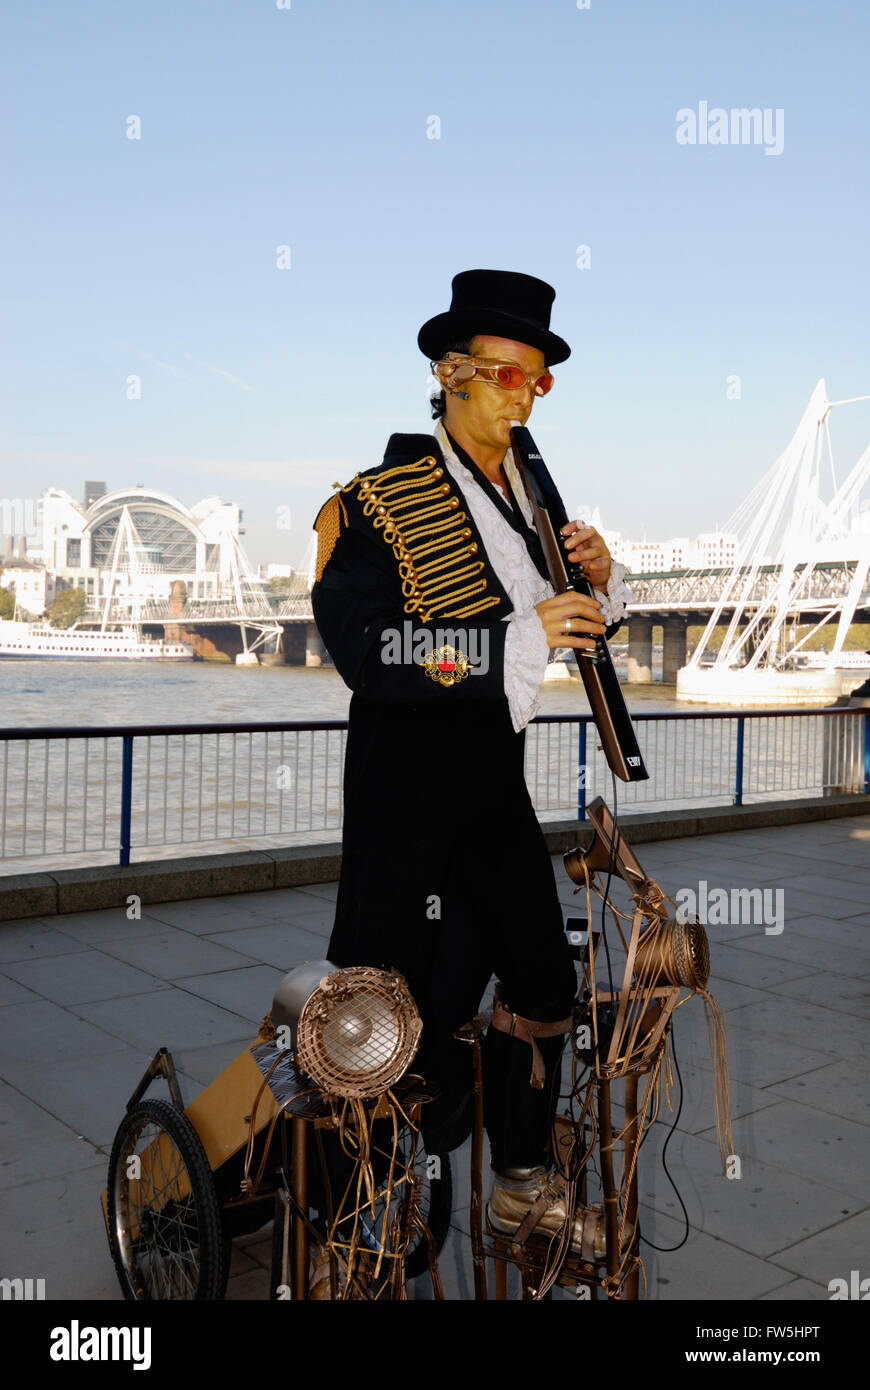 Whistler Dan, busker playing Akai MIDI wind instrument, on London's Southbank walkway, in front of Royal Festival - Stock Image